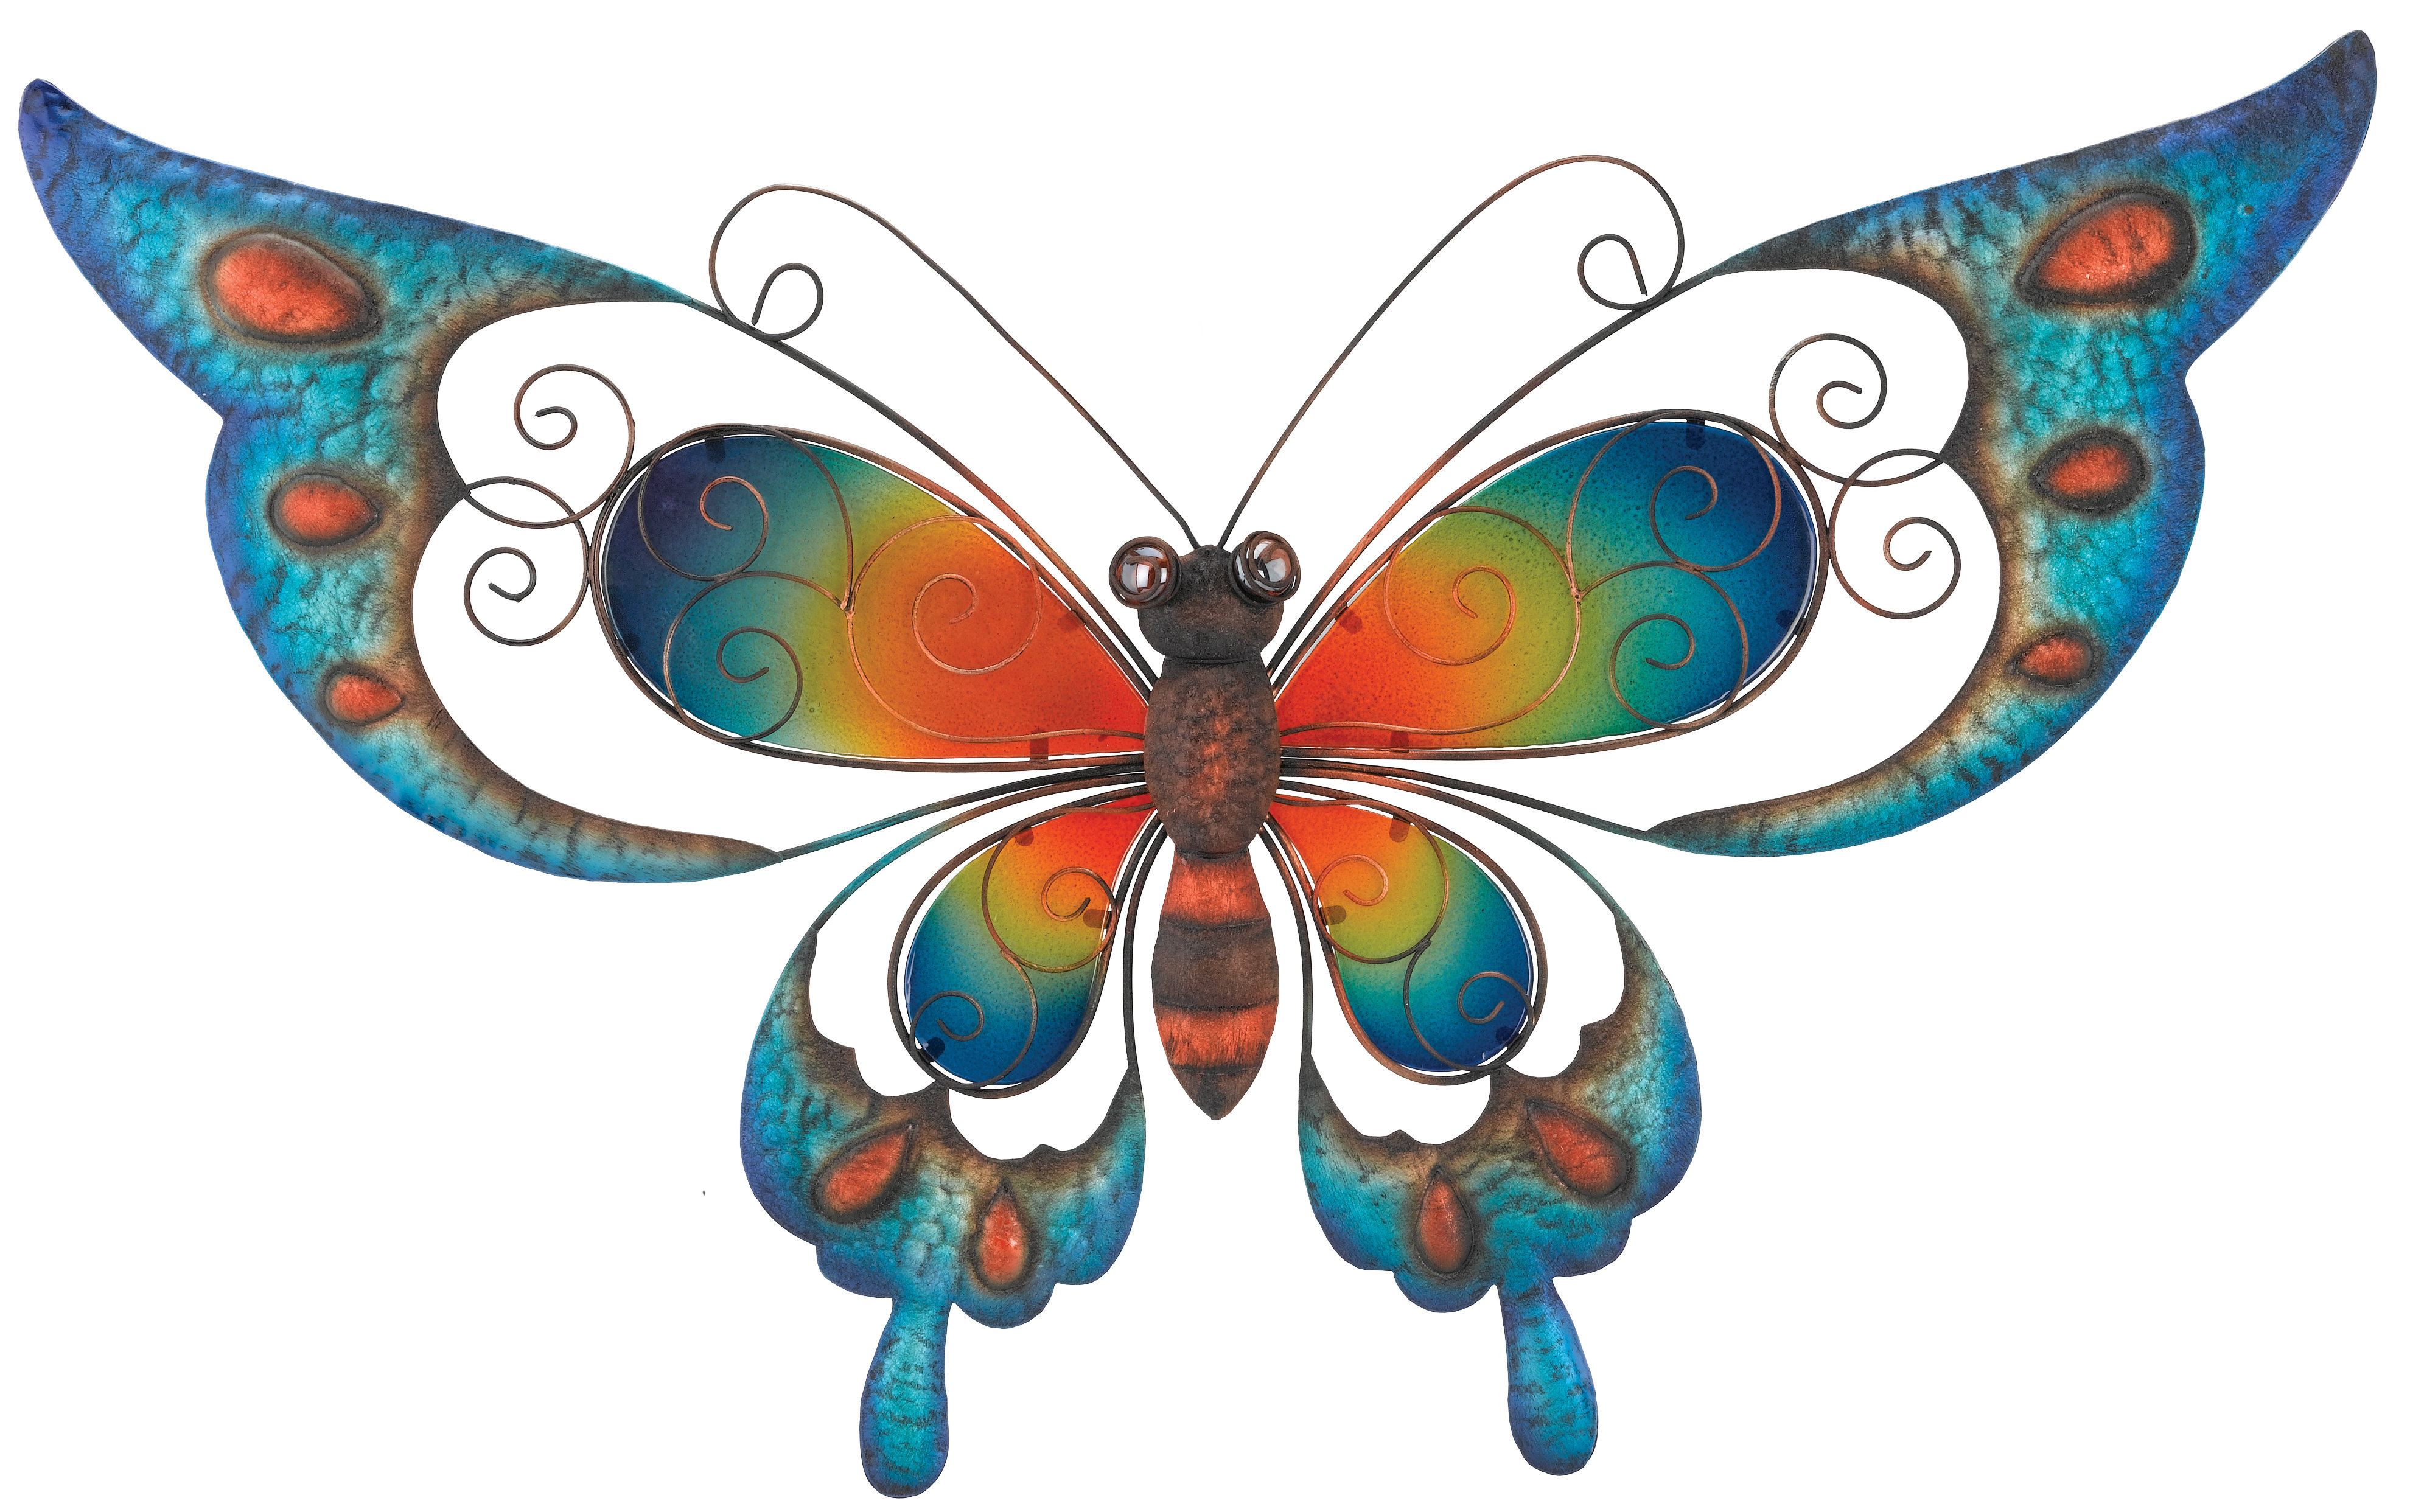 3 Piece Capri Butterfly Wall Decor Sets With Regard To Most Recently Released Regal Art & Gift Butterfly Wall Décor & Reviews (View 1 of 20)